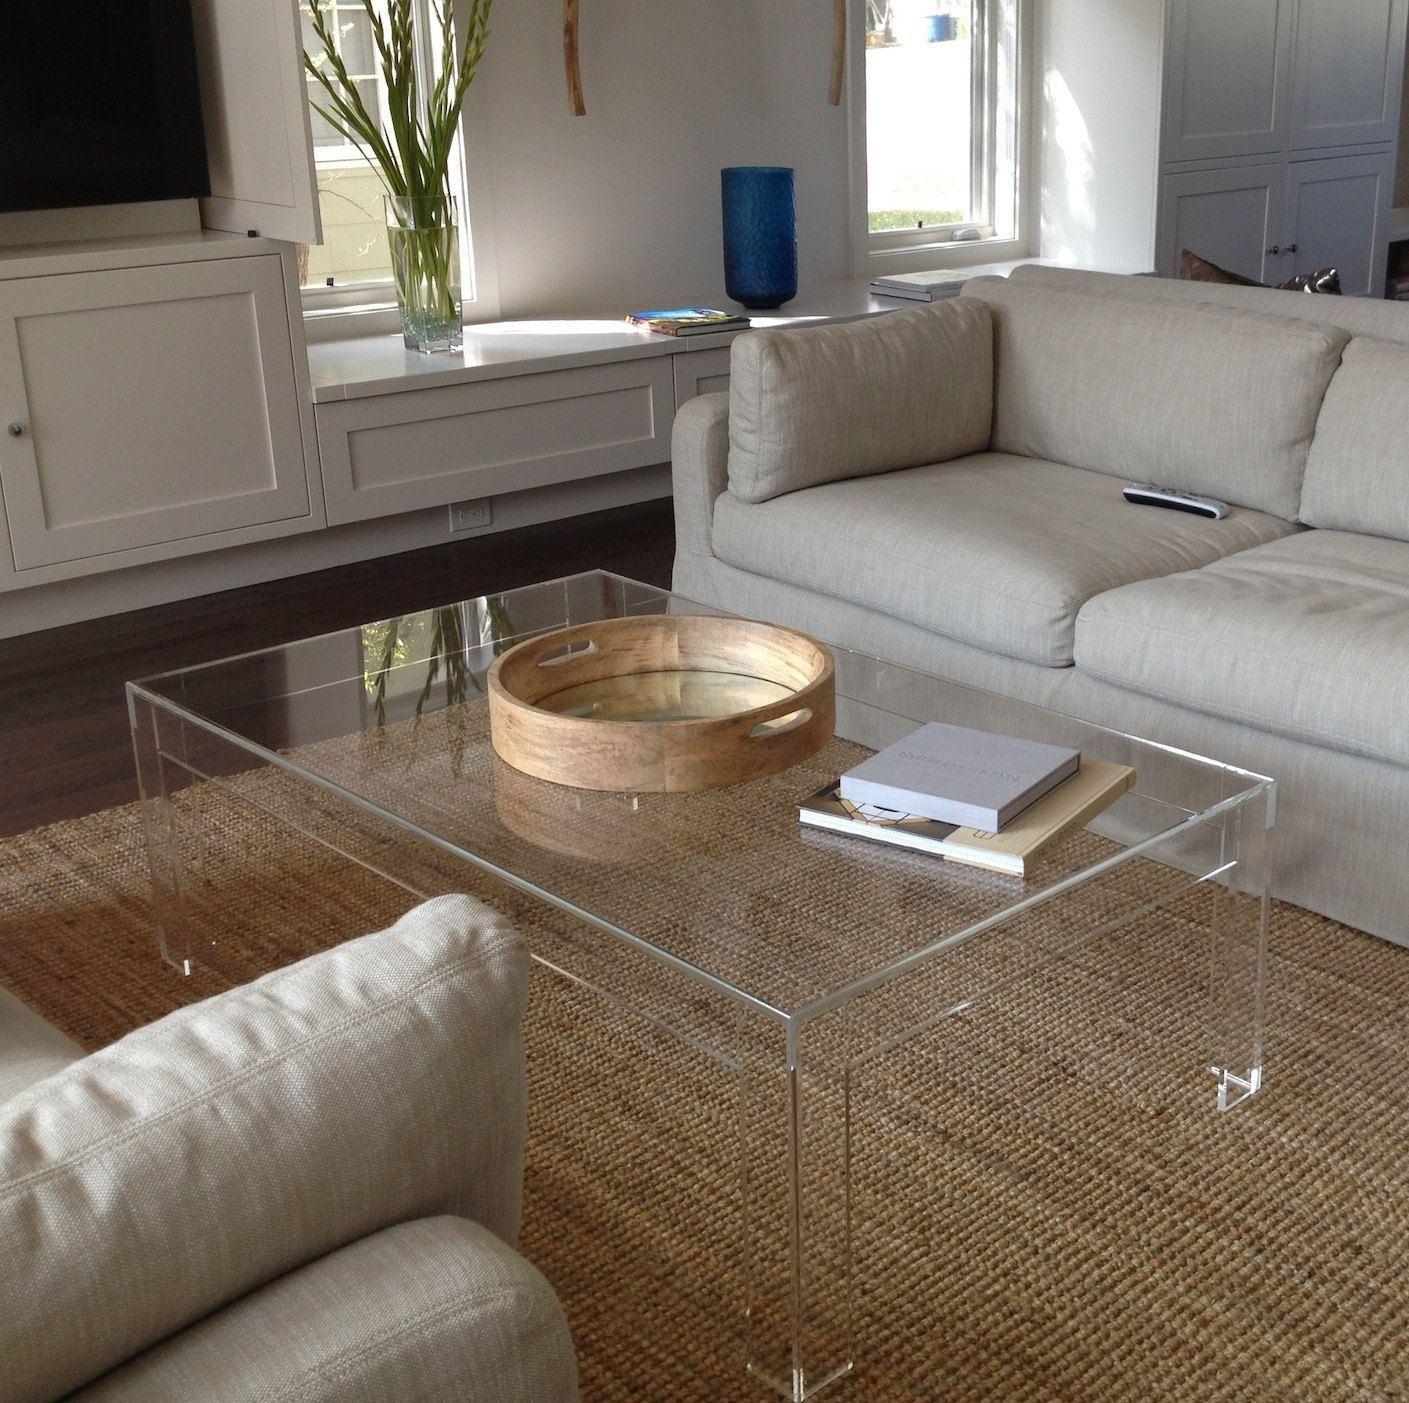 Best ideas about Clear Coffee Table . Save or Pin Clear Acrylic Coffee Table diy furniture Now.